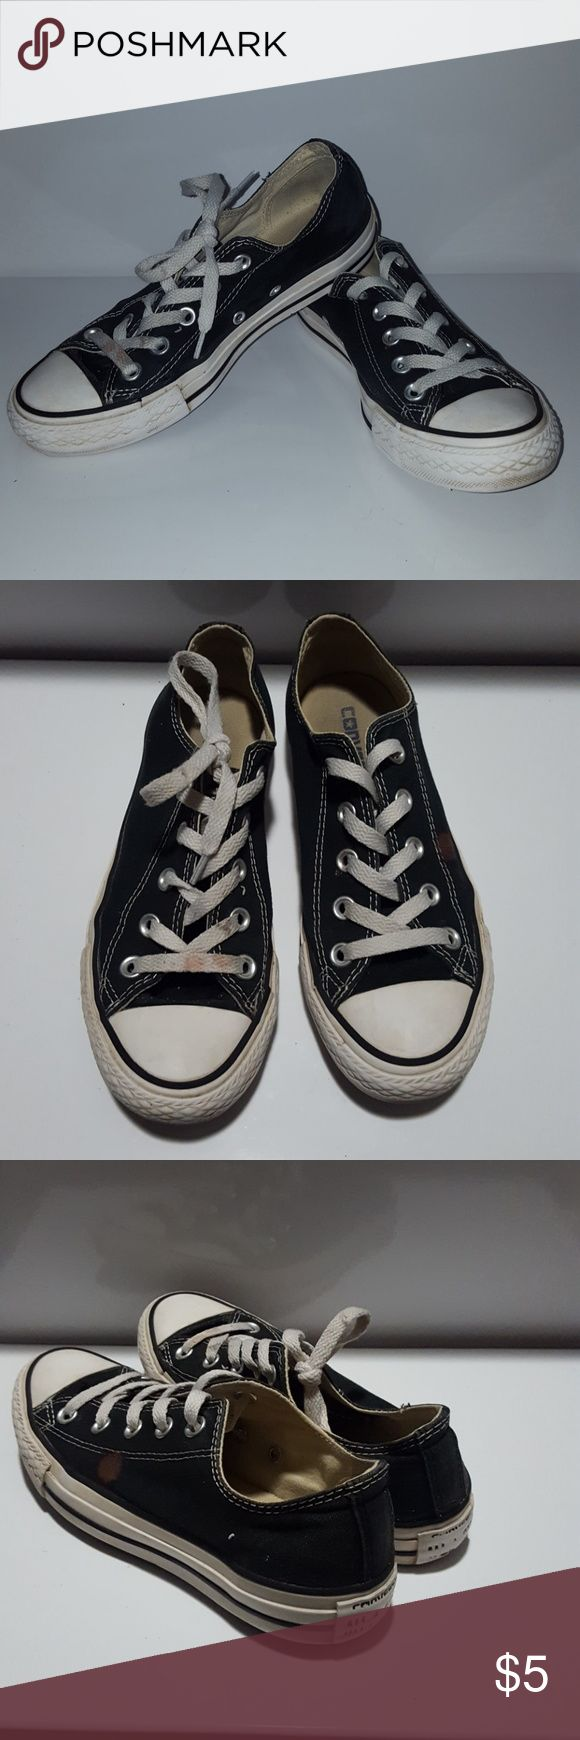 grungy black and white Converse grungy Black and white Converse. use, broken in and still really good condition.bleach spot Converse Shoes Sneakers